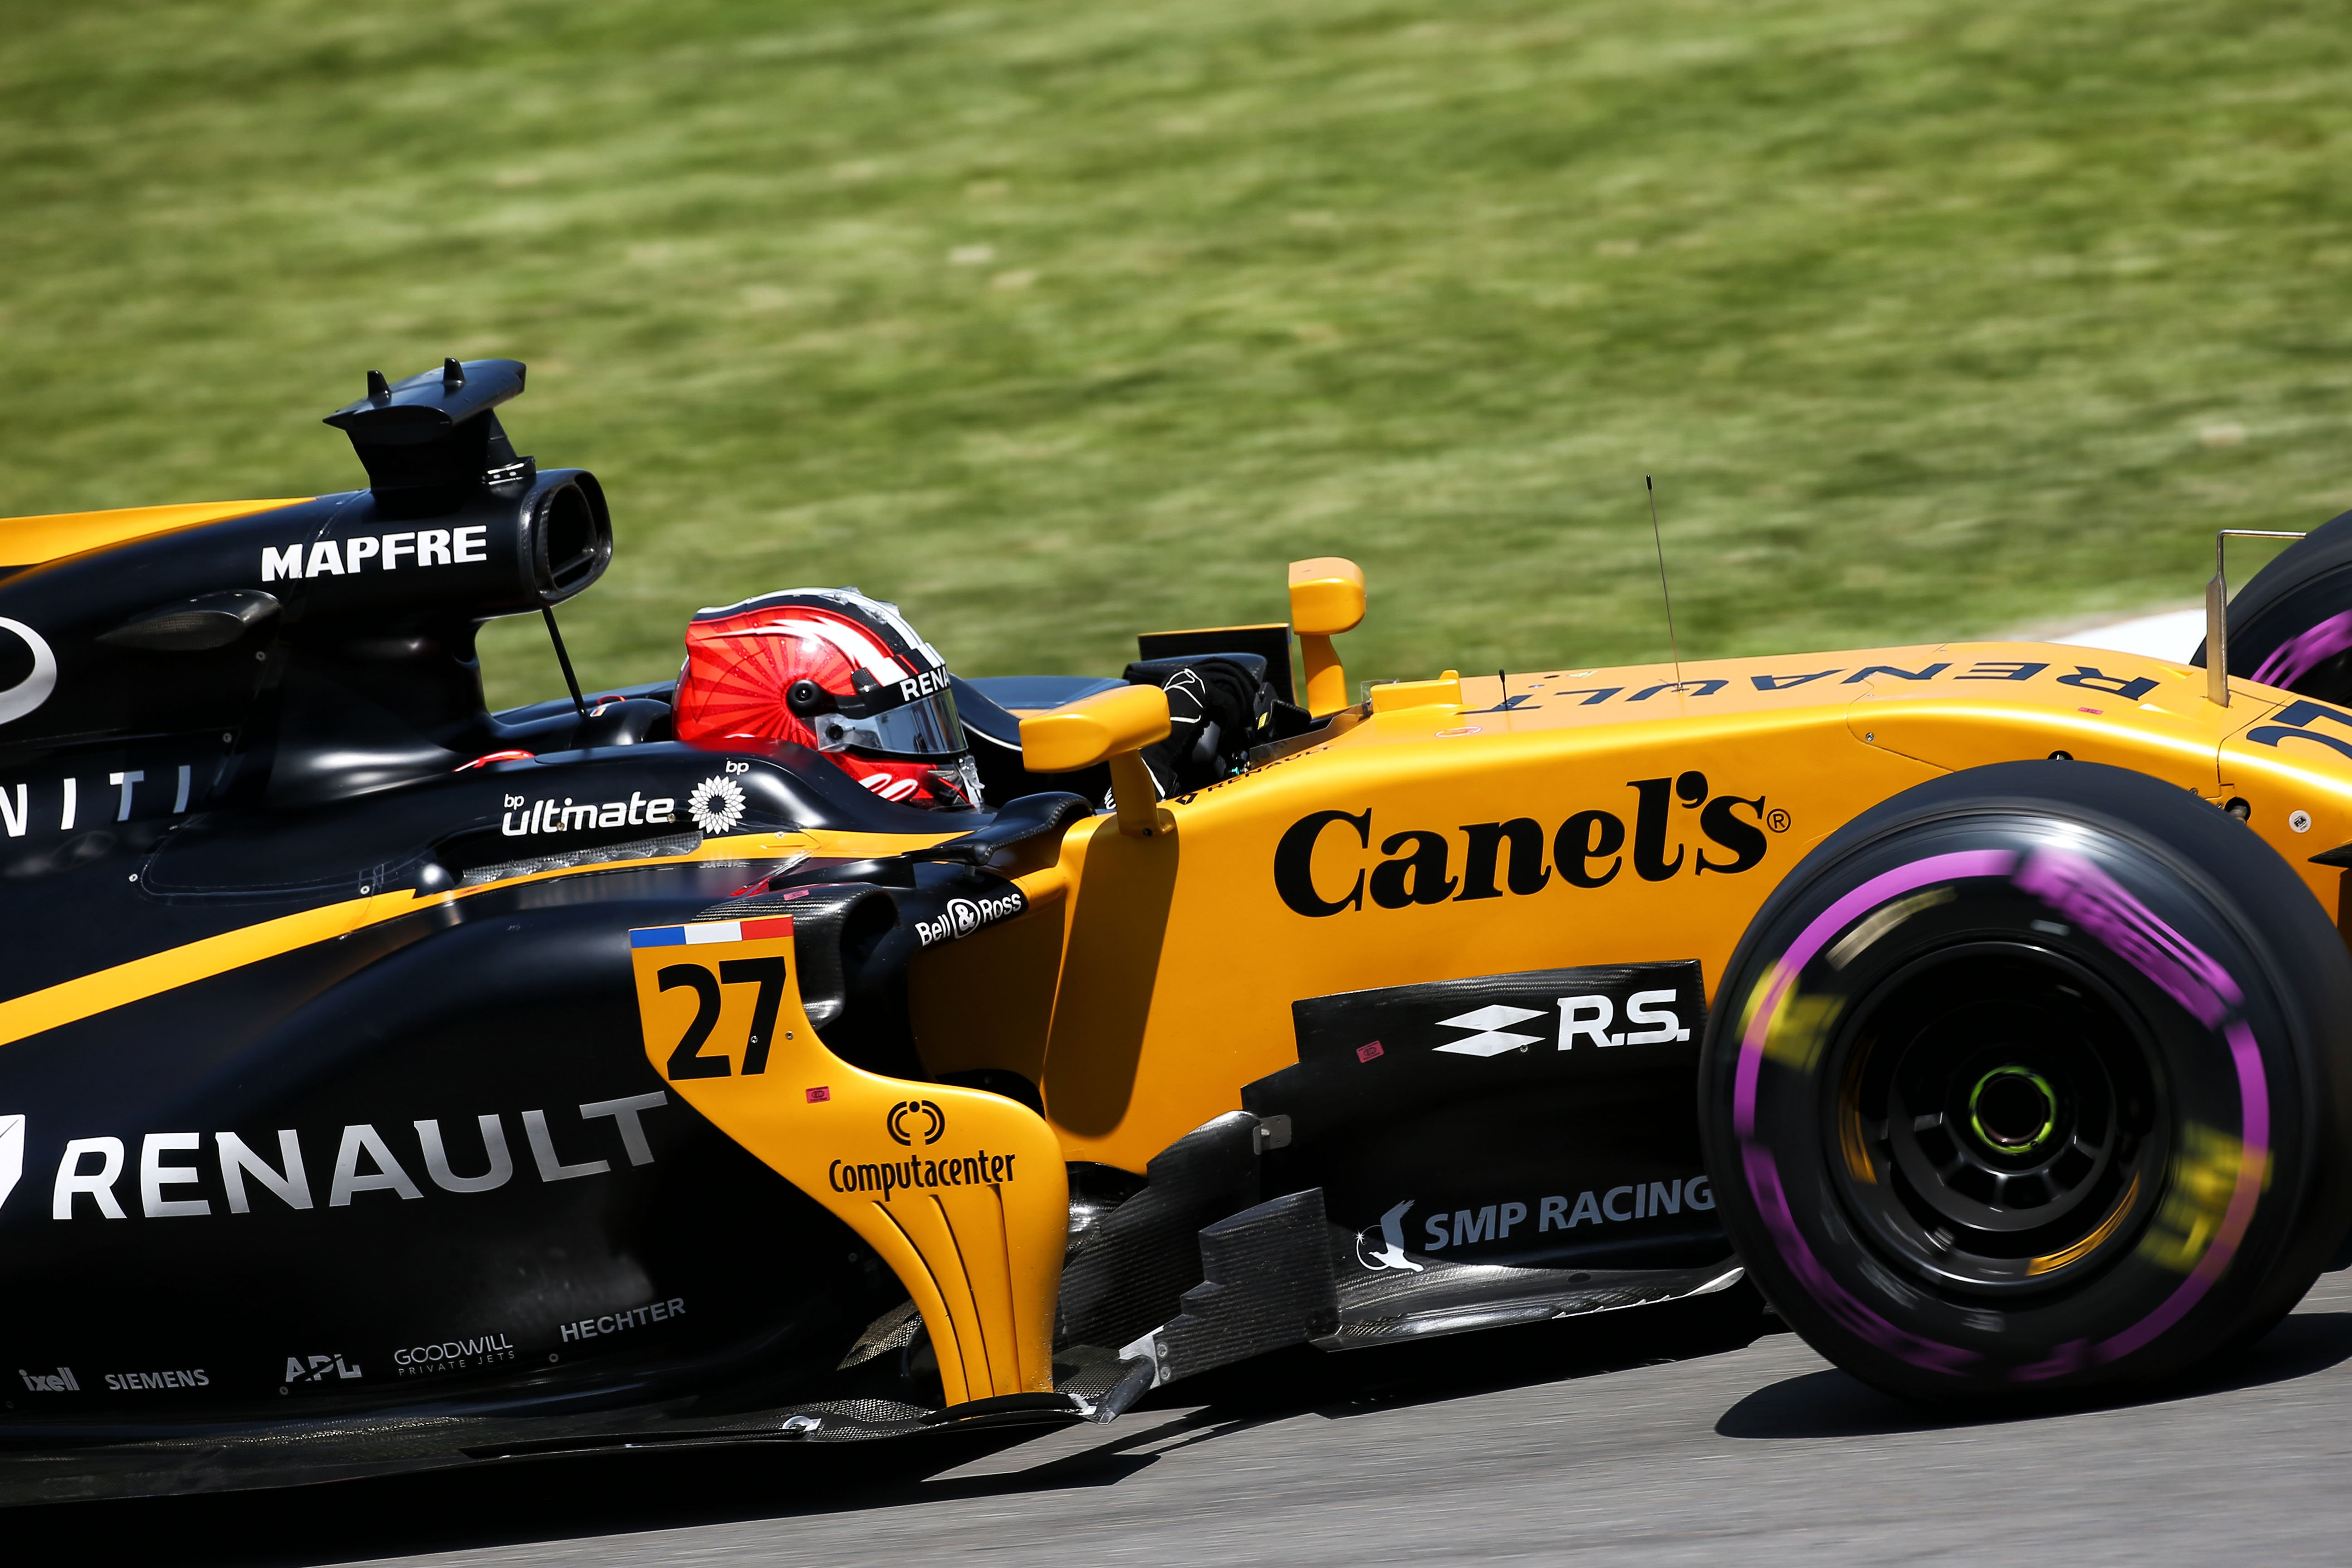 Formula One World Championship 2017, Round 7, Canadian Grand Prix, Montreal, Canada, Saturday 10 June 2017 – Nico Hulkenberg (GER) Renault Sport F1 Team RS17.